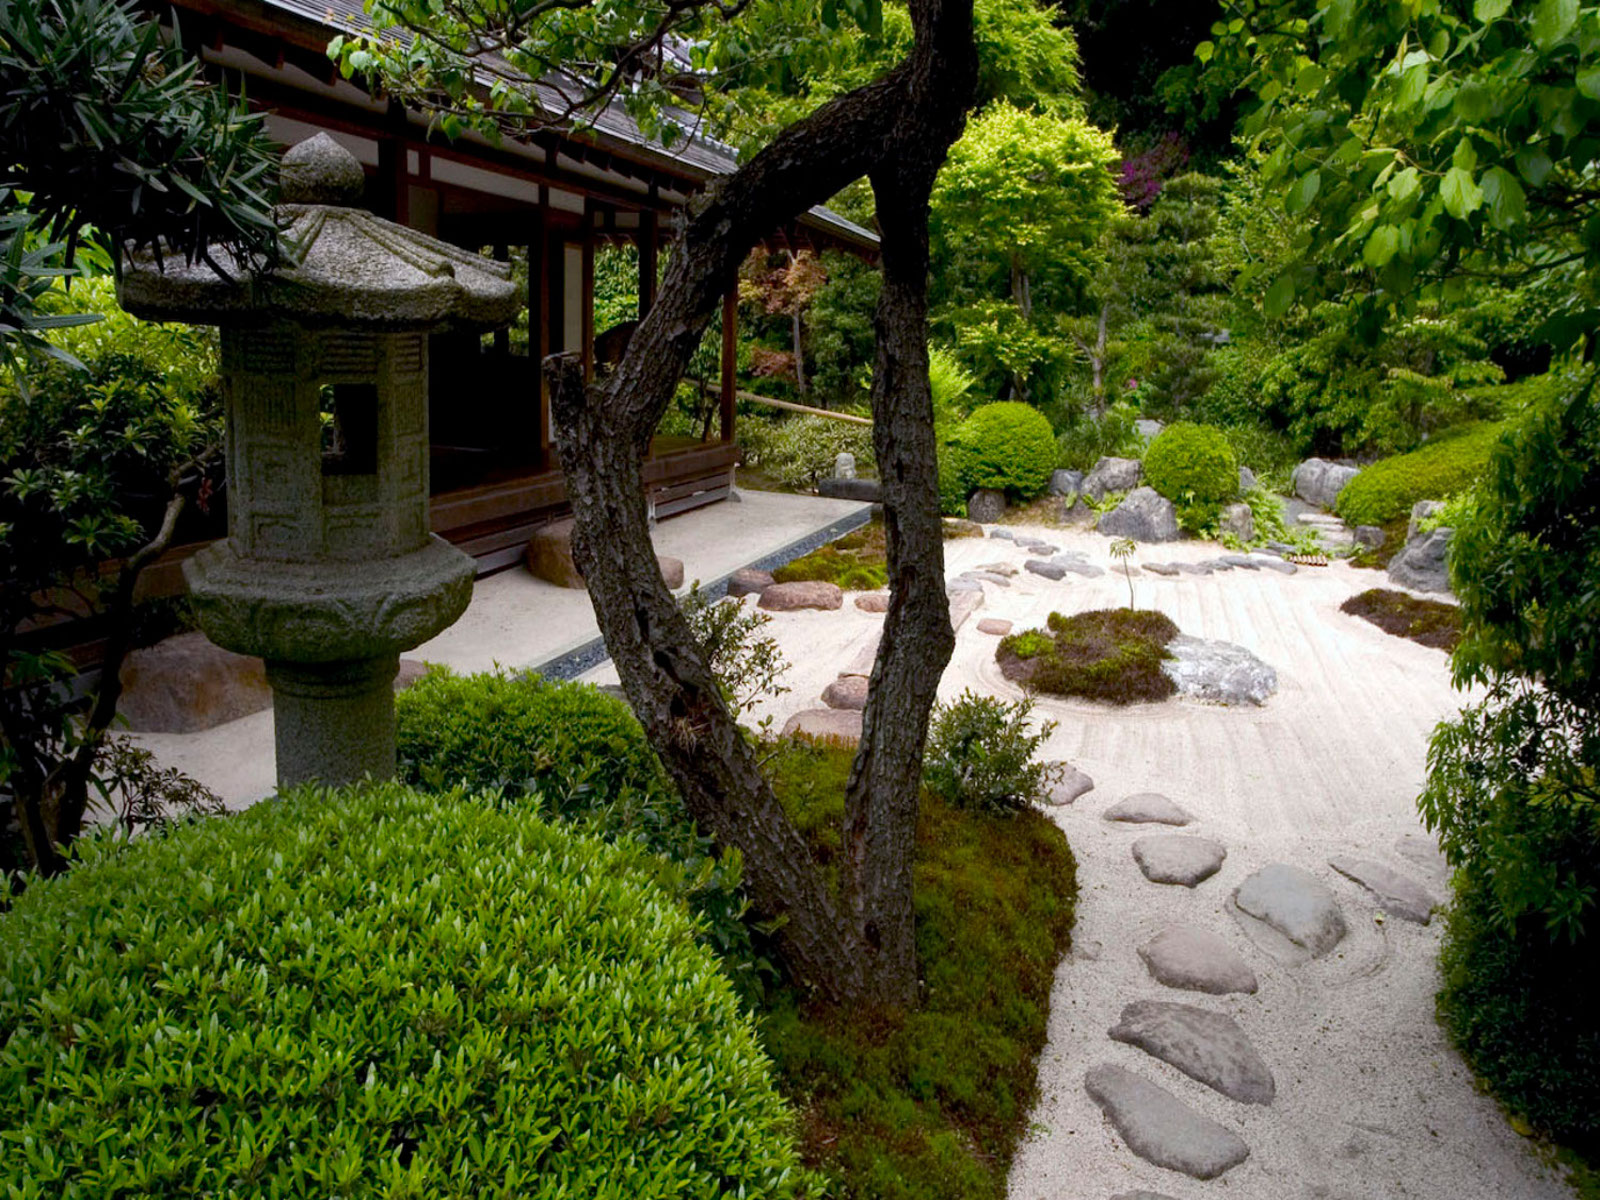 Zen garden wallpaper hd wallpaper pictures gallery for Backyard zen garden design